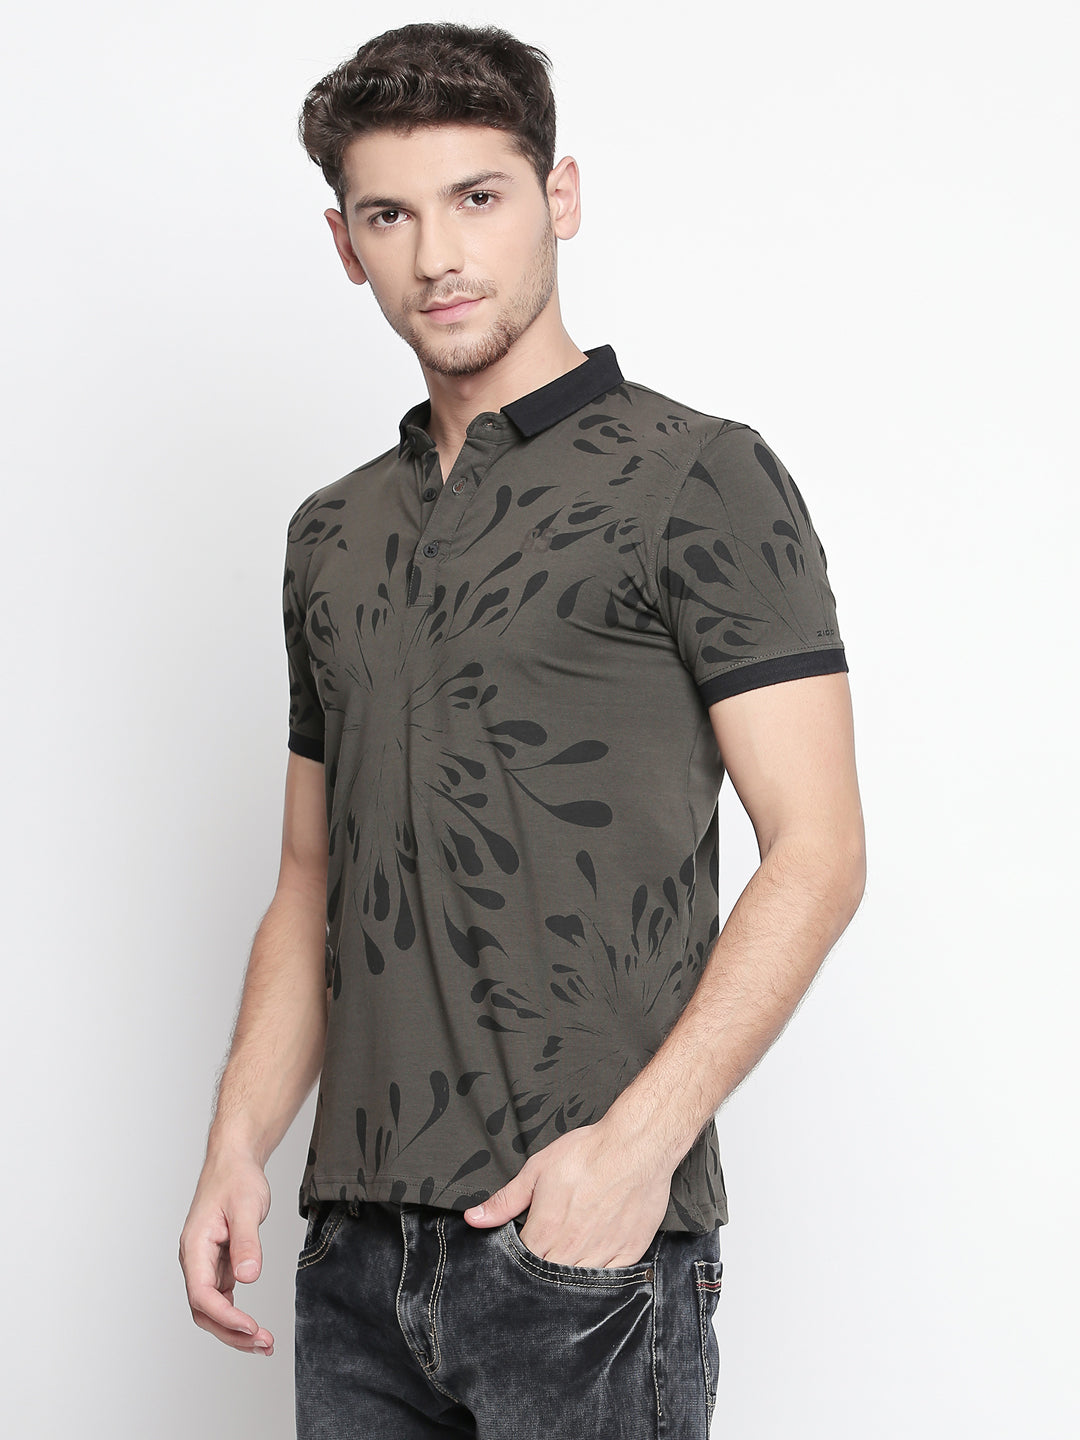 ZIDO Printed Men's T-Shirt TPRT404